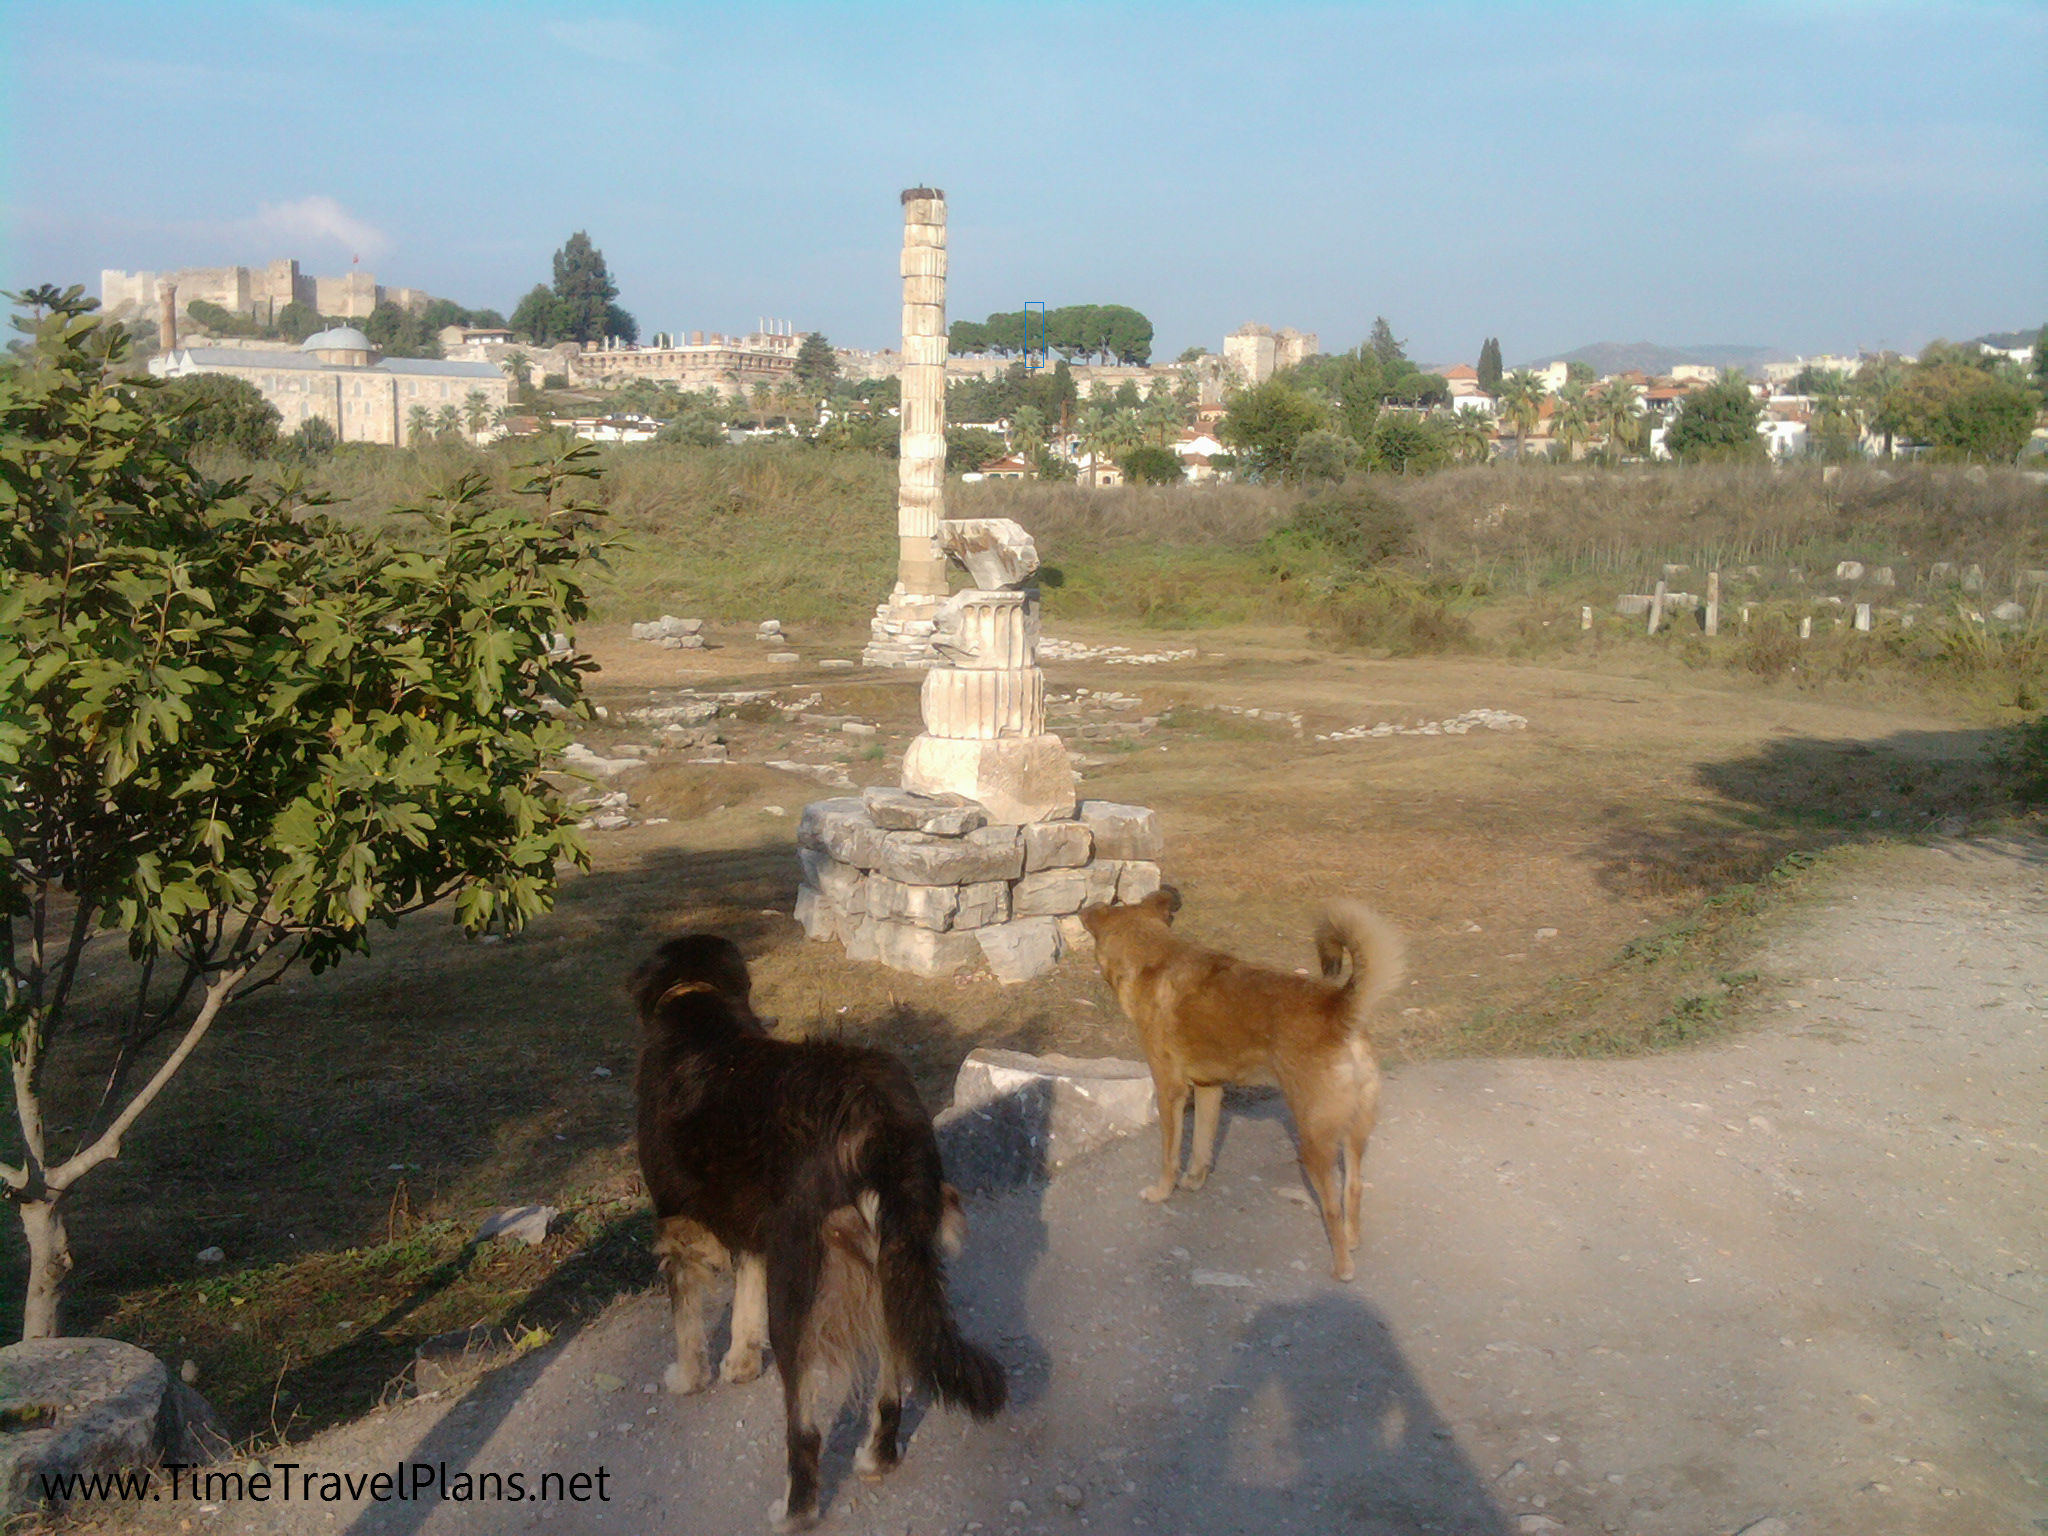 These dogs are staring at what remains of the Temple of Artemis in Ephesus, Turkey. It's as if they know that something great once stood here. This temple was one of the Seven Wonders of the Ancient World. Now look at it...